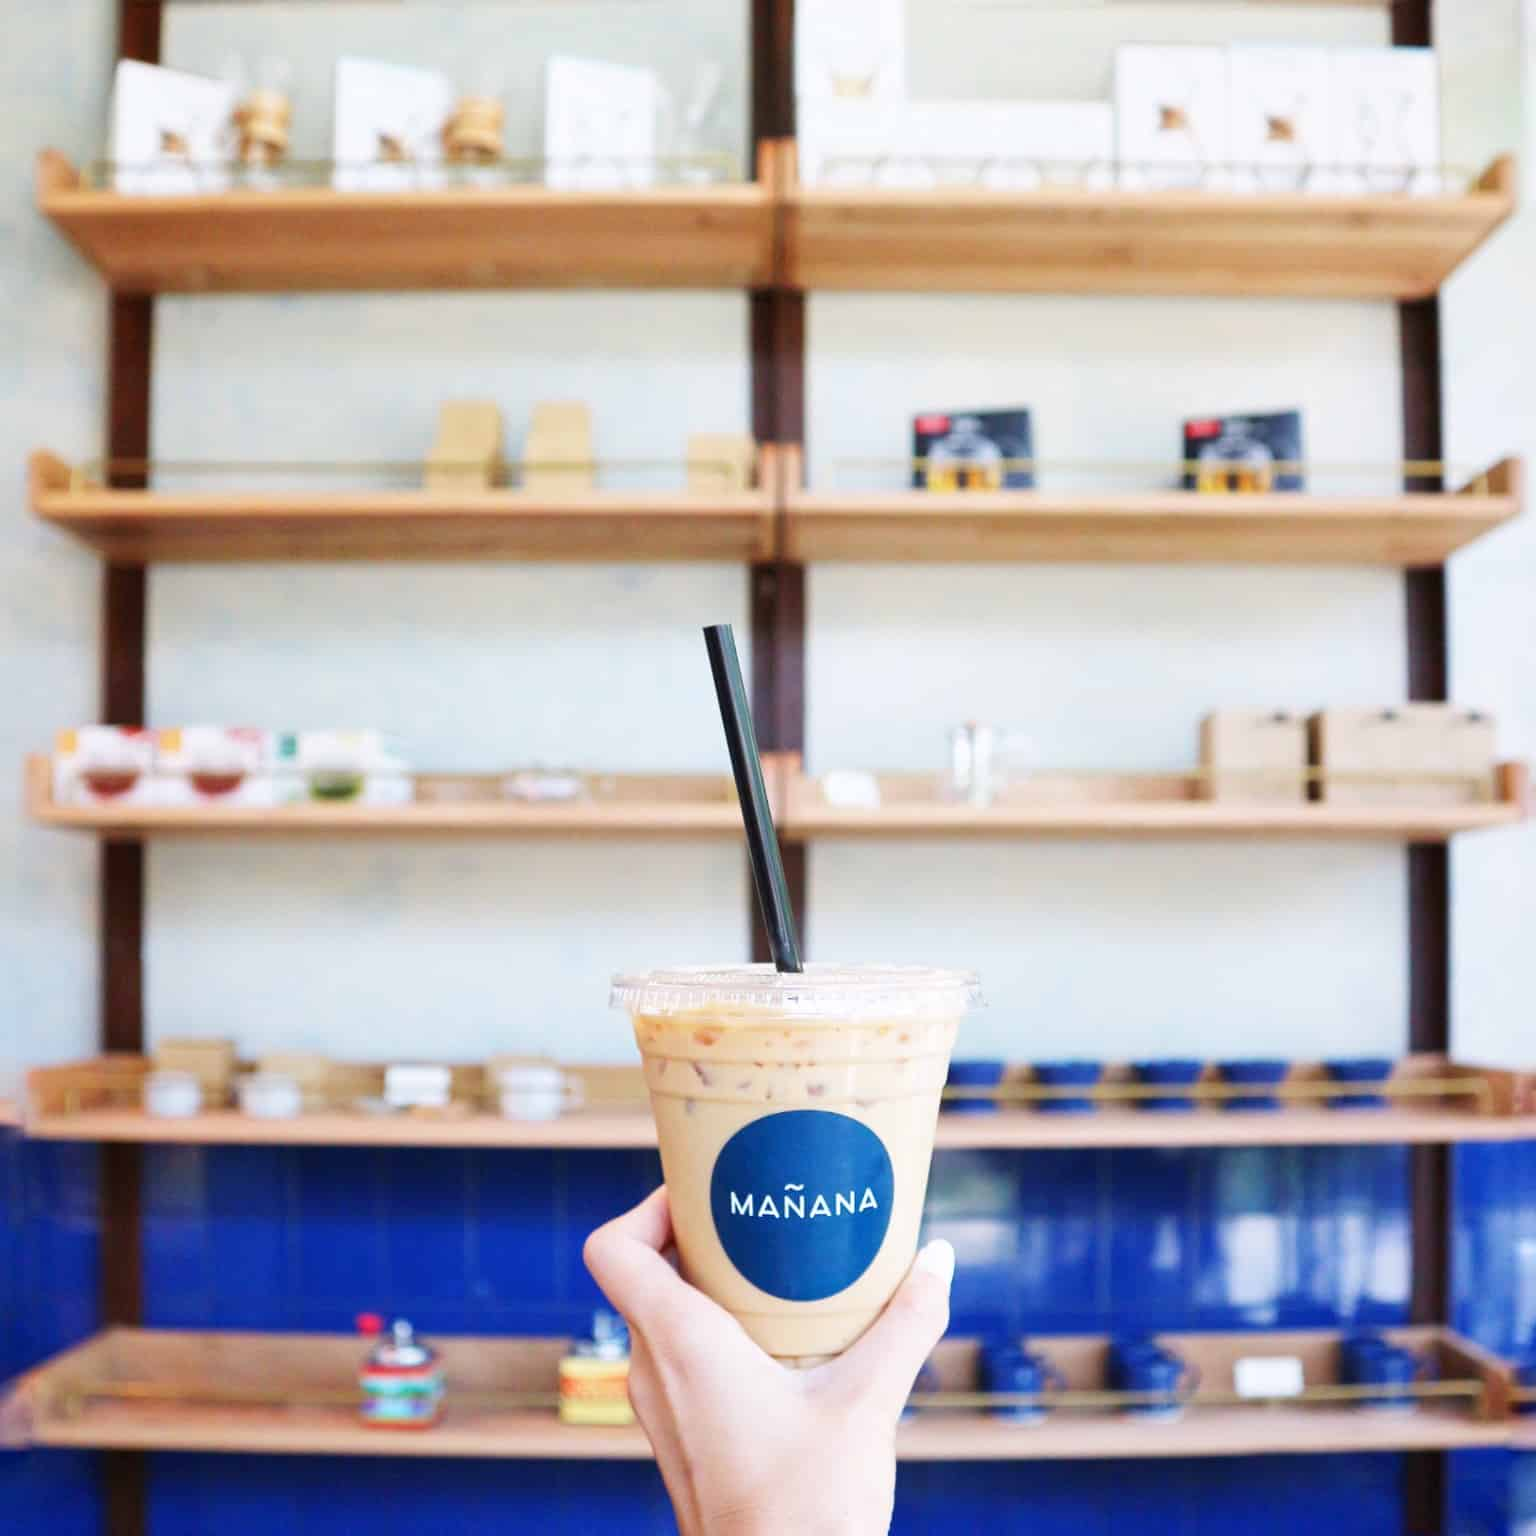 Manana - coffee shops in austin